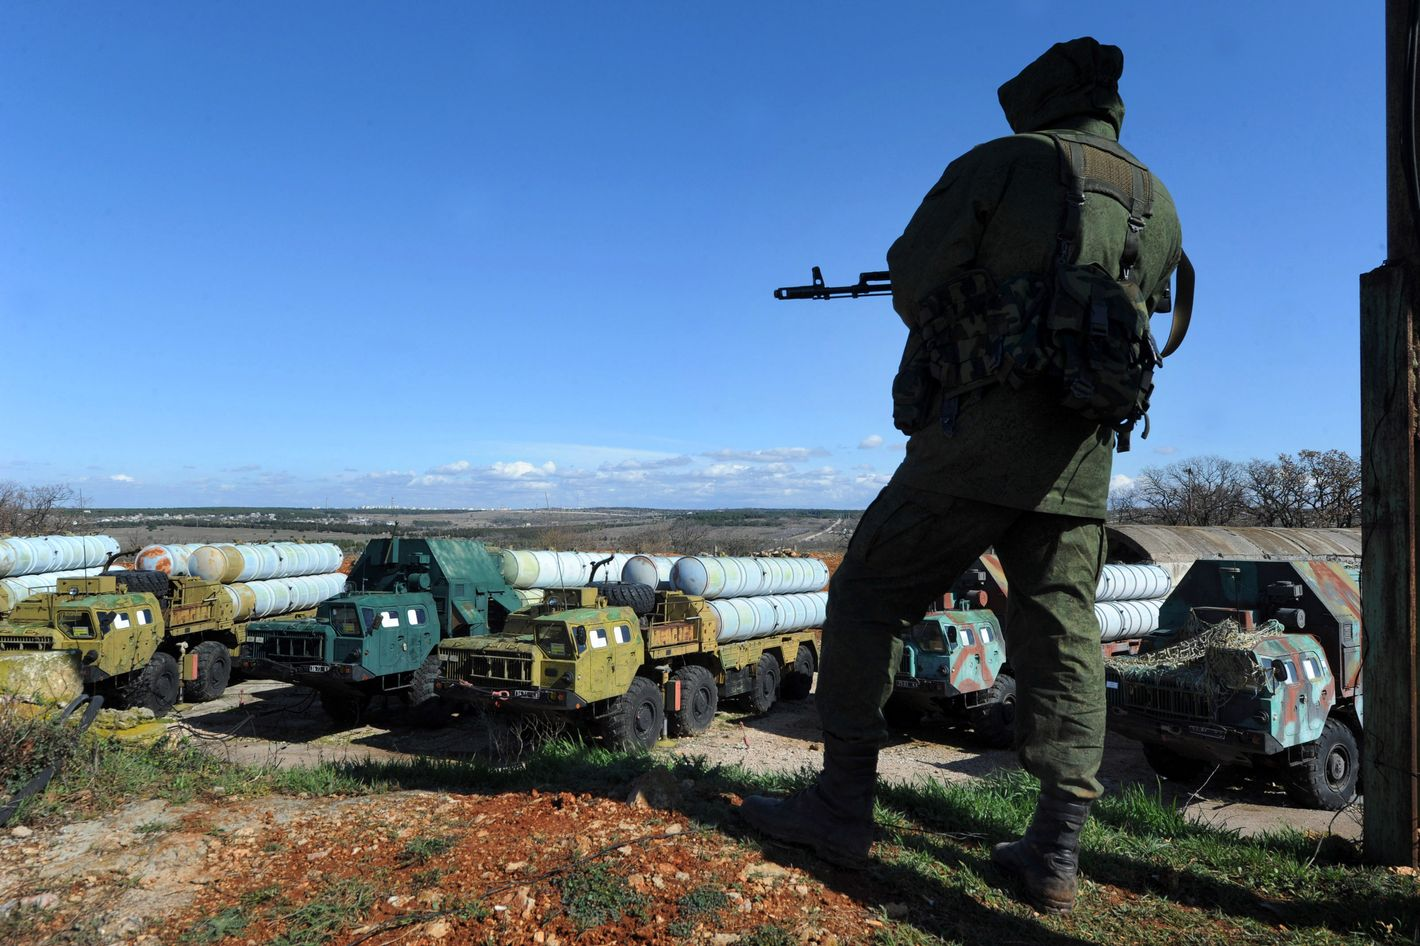 A member of the Russian forces guards in front of surface-to-air S300 missiles  in a Ukrainian anti-aircraft missile unit on the Cape of Fiolent in Sevastopol on March 5, 2014. A military source has told Interfax-Ukraine that Russian commandos have seized control of the anti-aircraft missile systems and are guarding them.